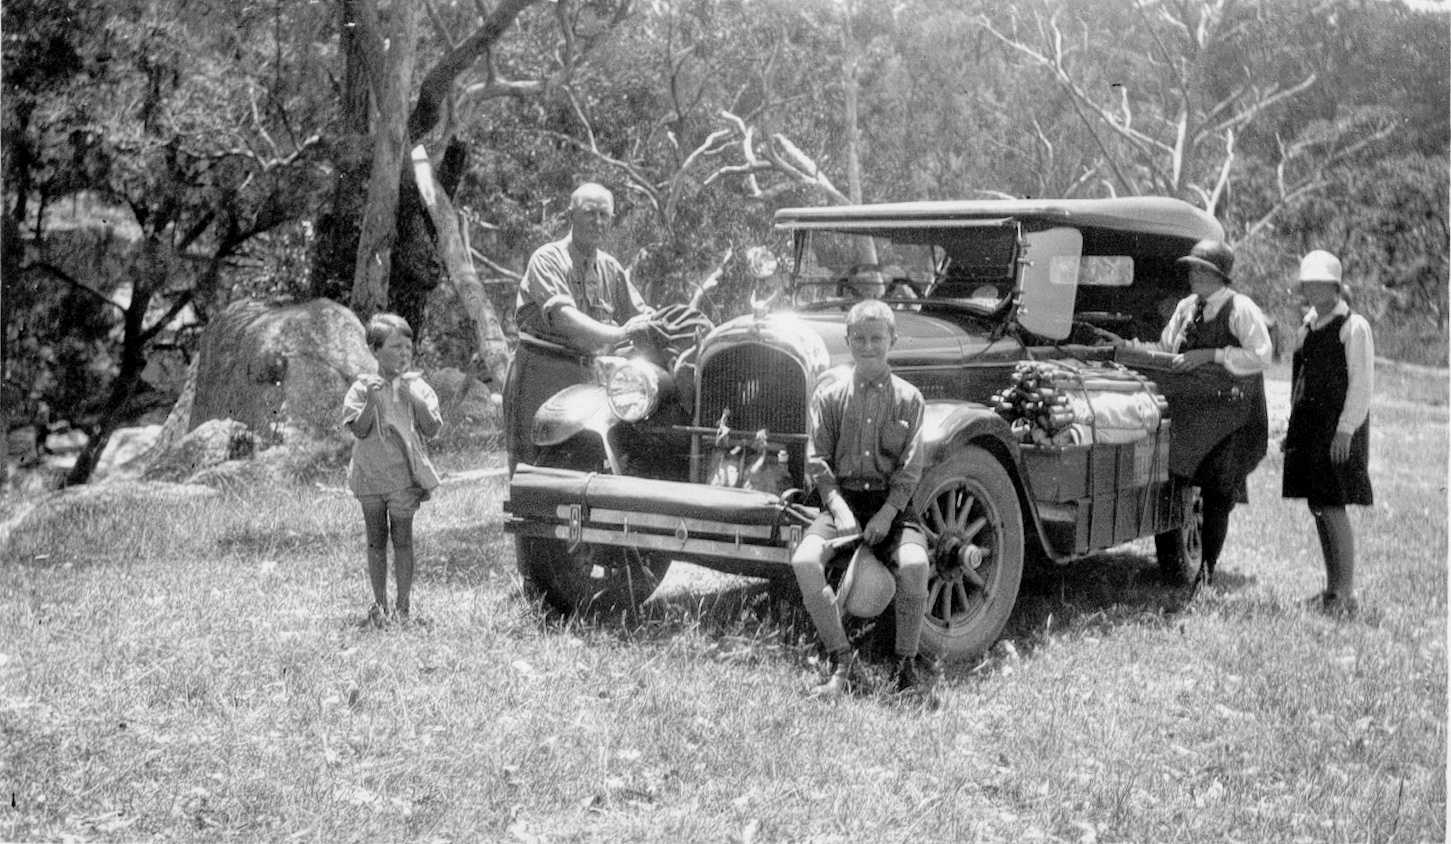 Family Tree Blossoms: The family vehicles over the years